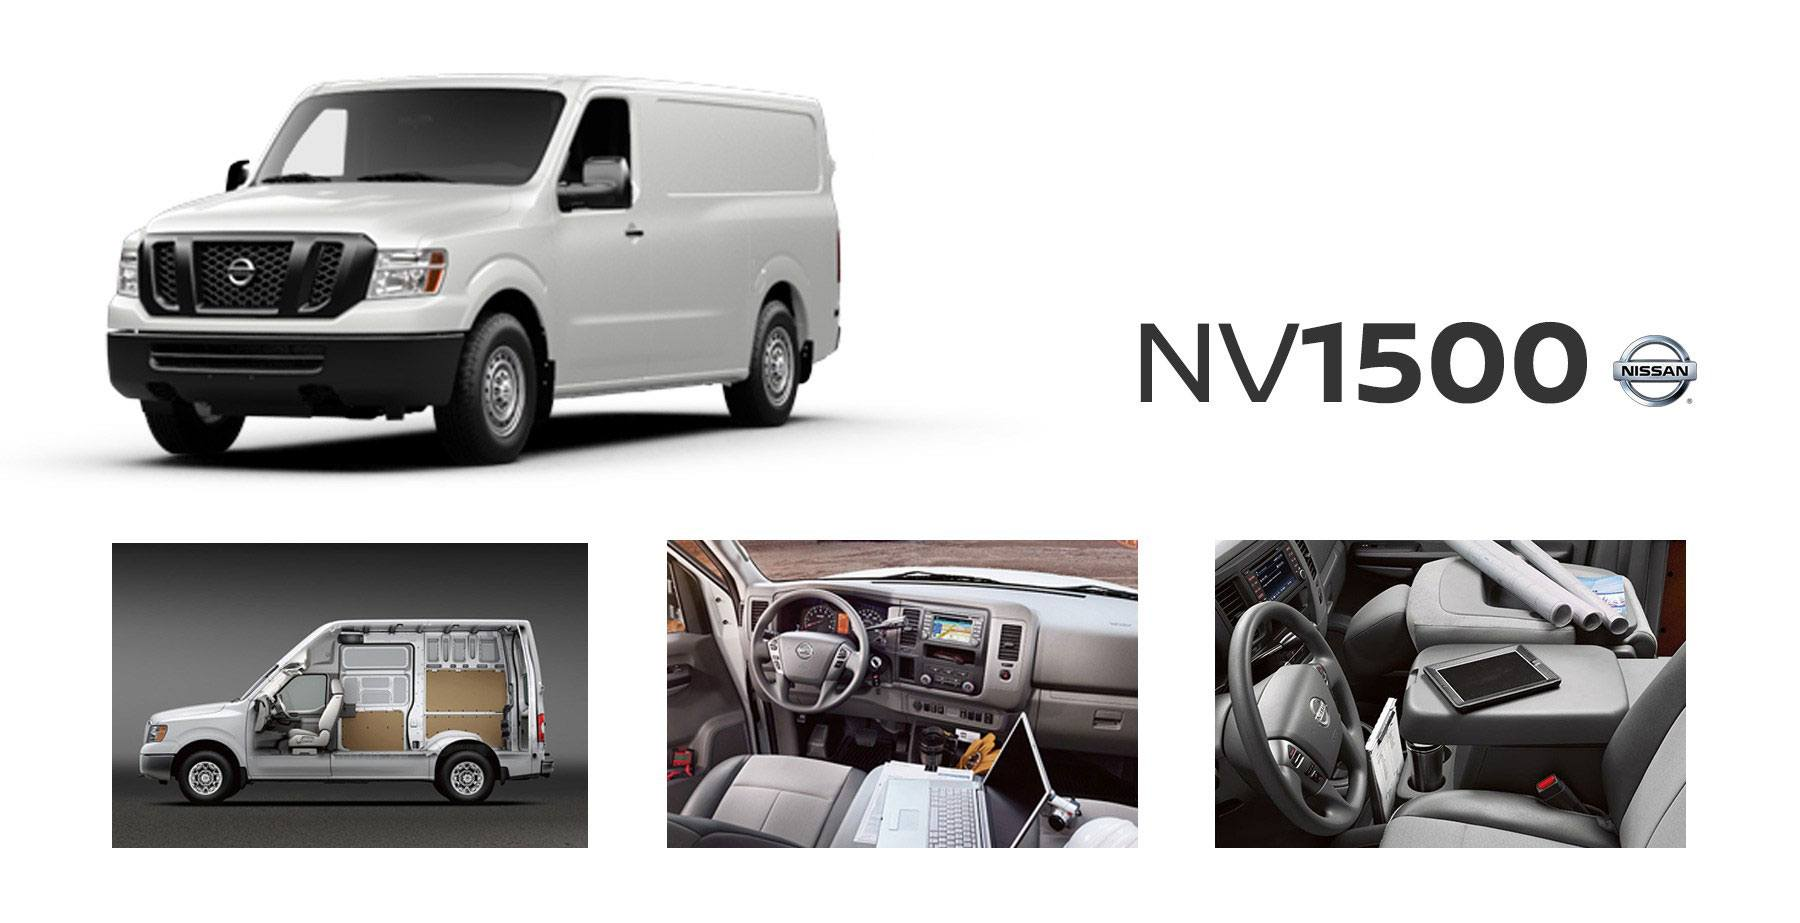 review showthread images with nv attachment nissan of attached the vbb